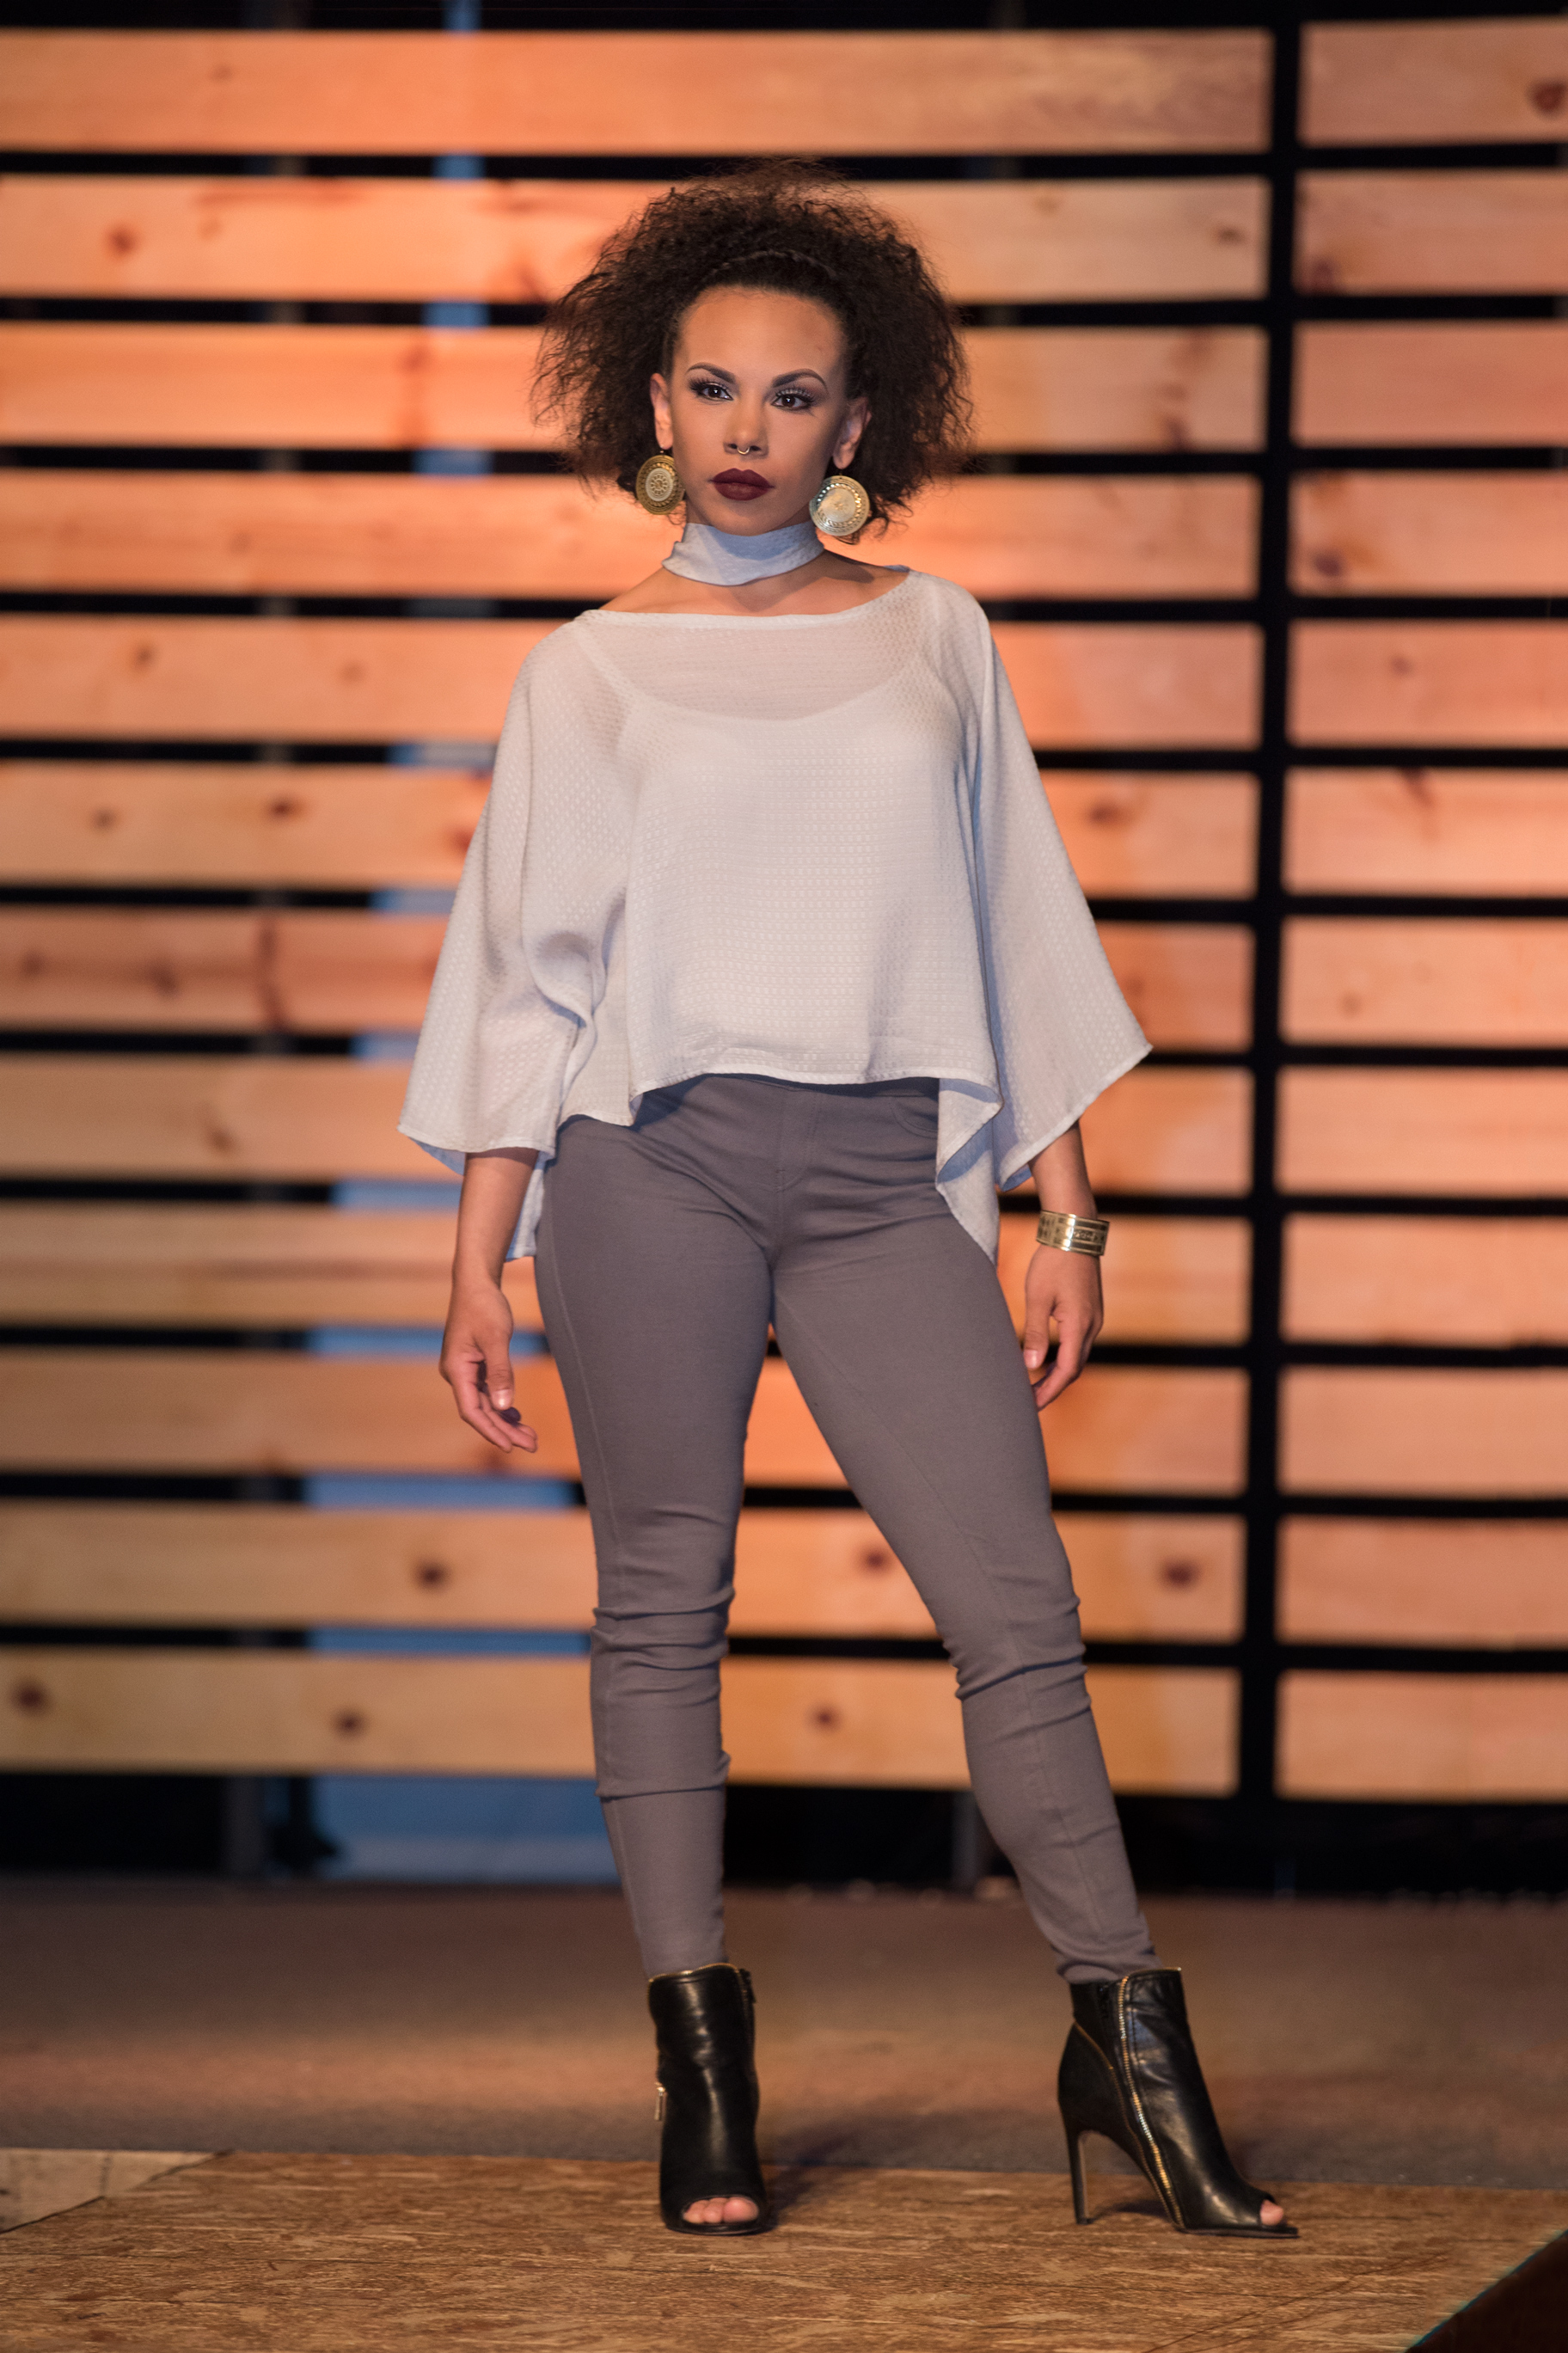 Mission Wear Upcycled Patchwork Fashion Show - 013.jpg